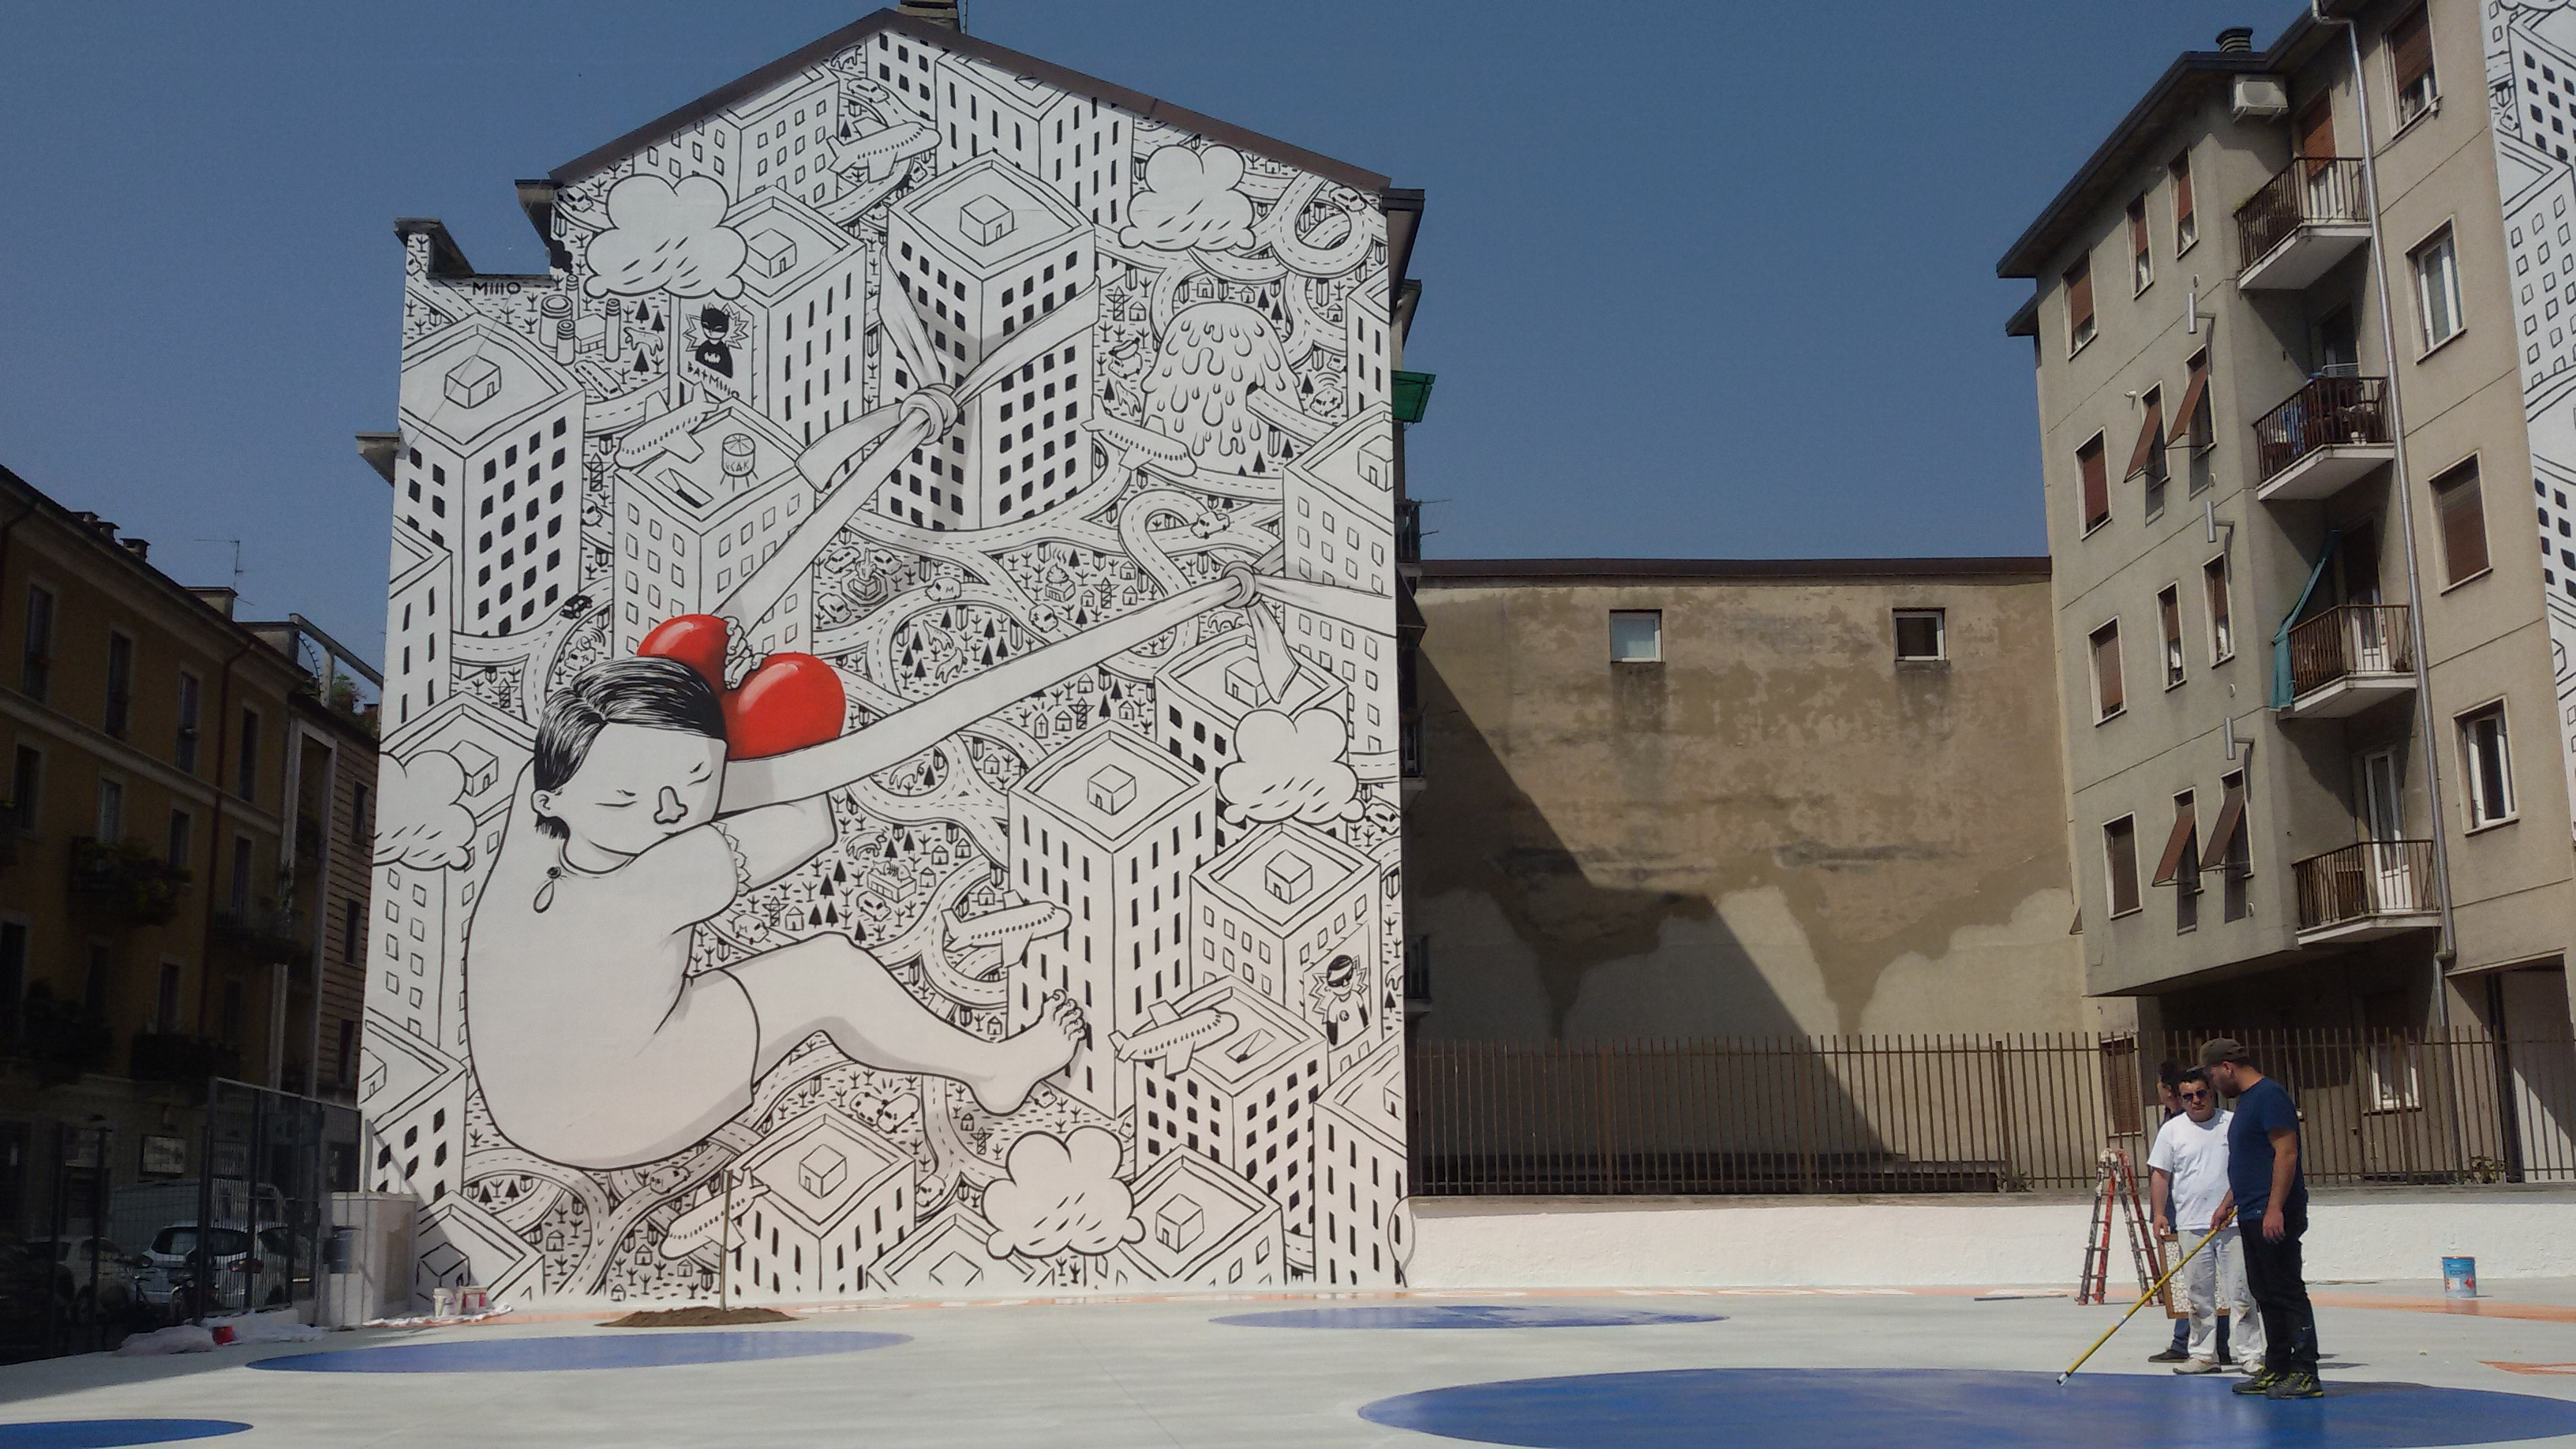 La street art di Millo in via Morosini